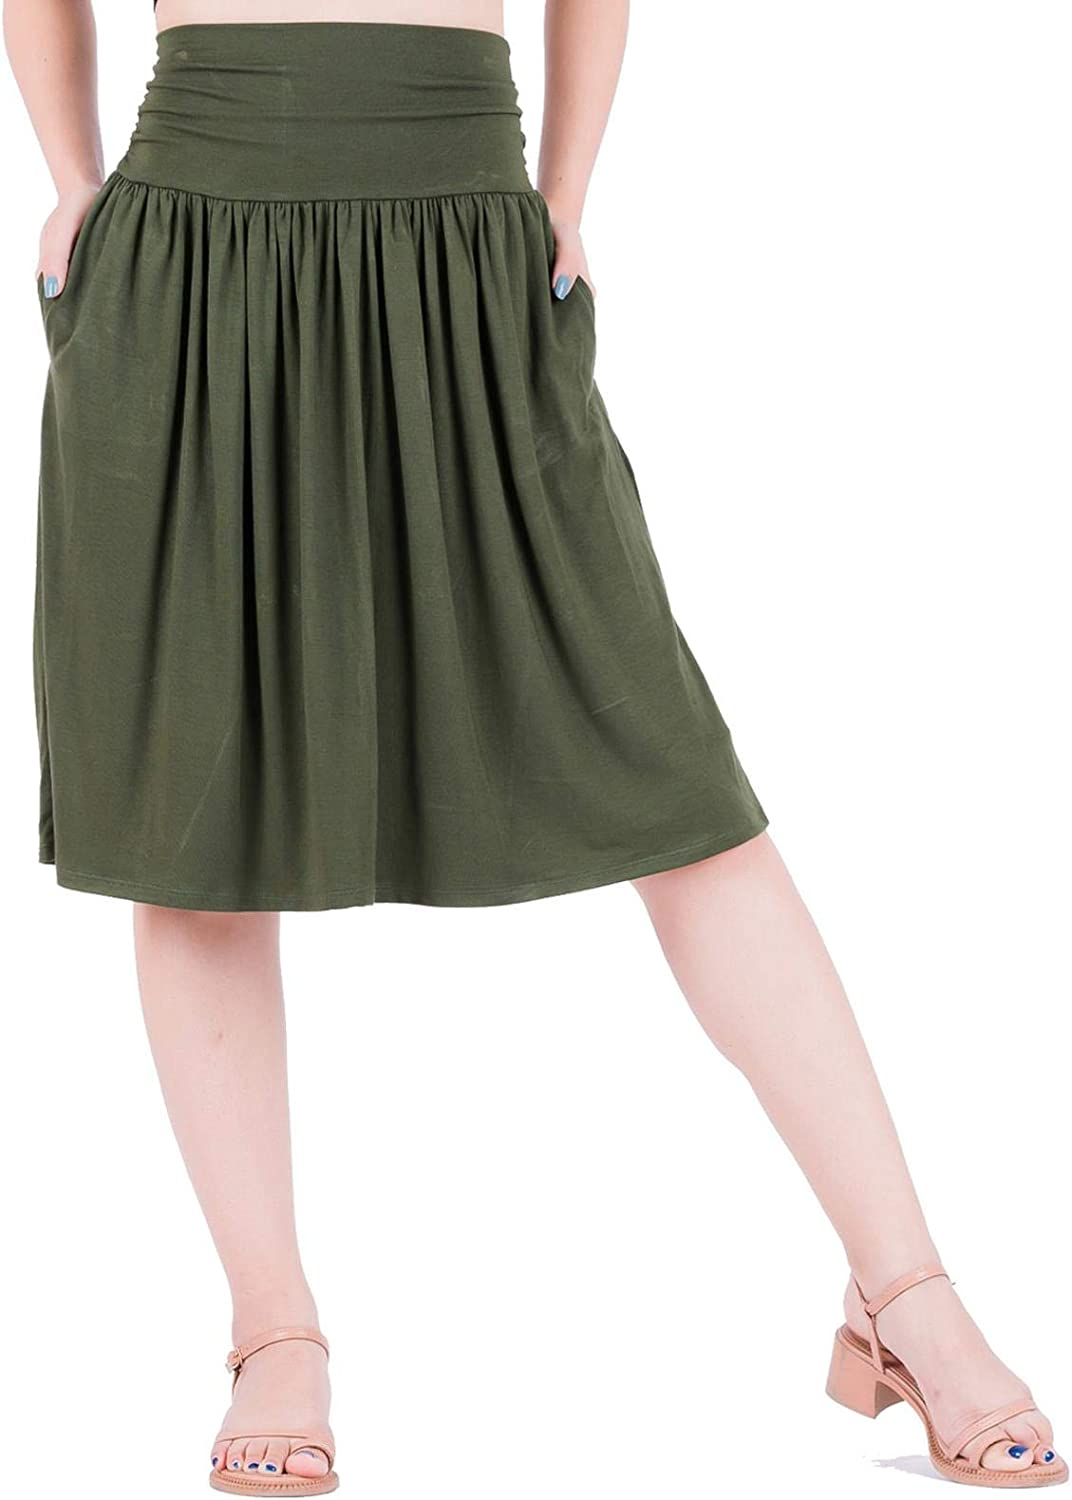 LOFBAZ Skirt with Pockets for Women Midi Below The Knee Casual Ruched Flowy